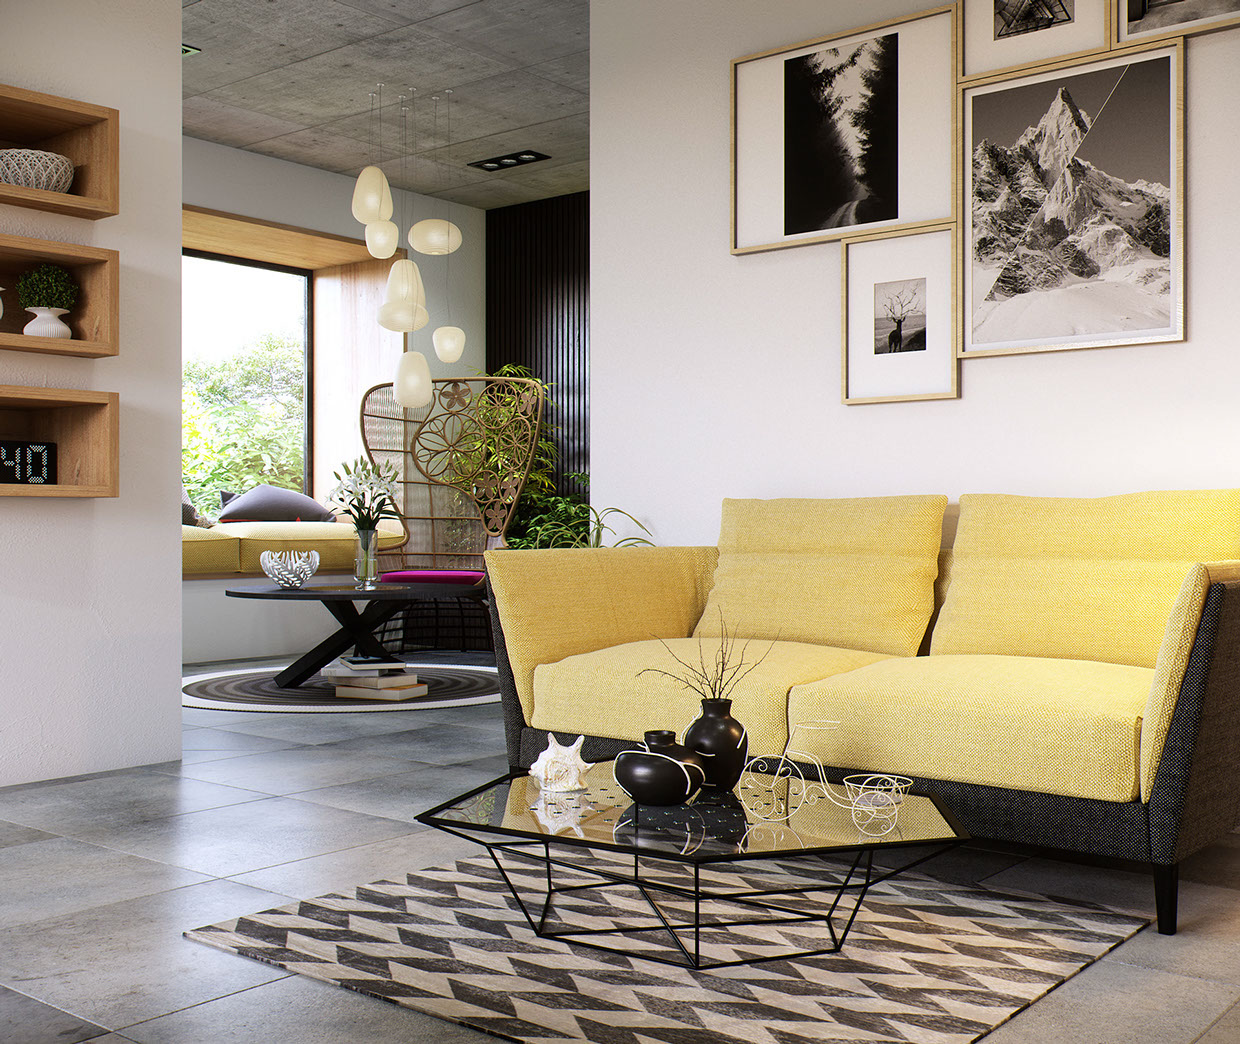 Glass Coffee Table - 8 creatively designed bedrooms in detail